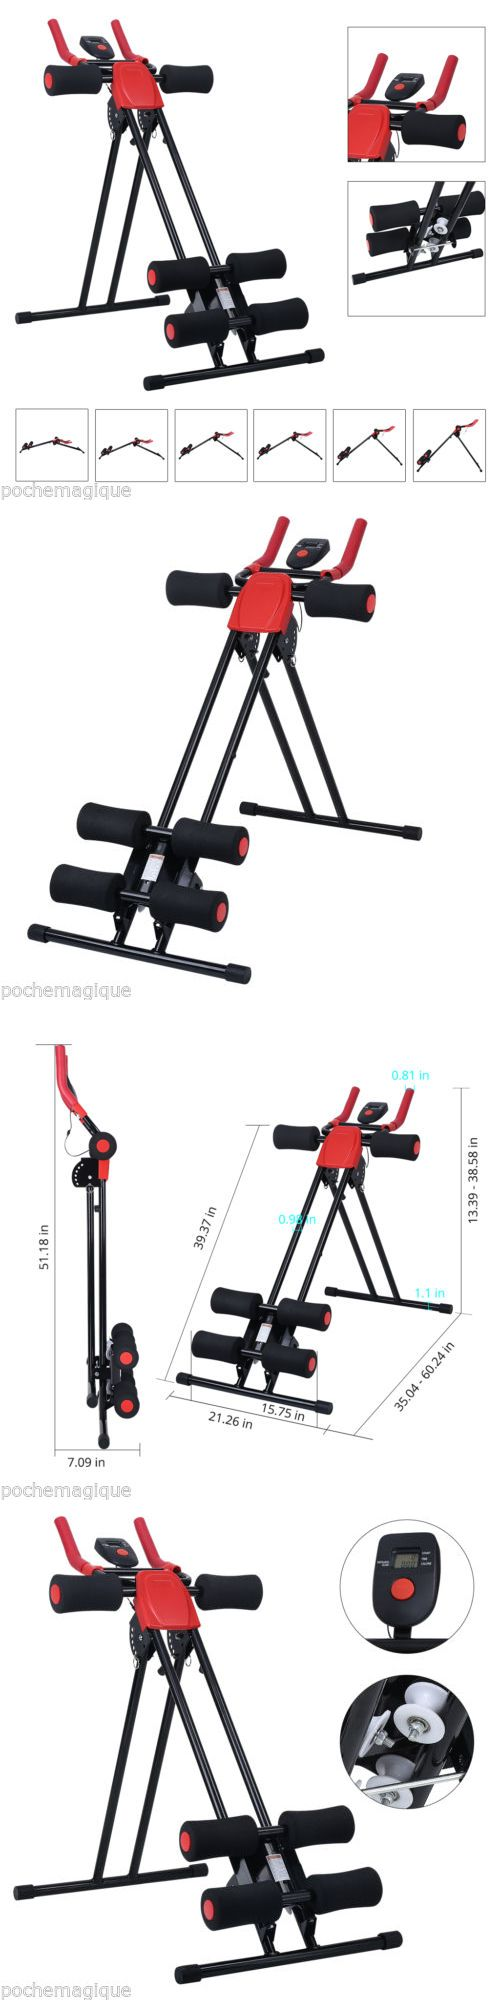 Abdominal Exercisers 15274: Ab Cruncher Abdominal Trainer Glider Rail Roller Smart Machine Home Exercise Gym BUY IT NOW ONLY: $71.99